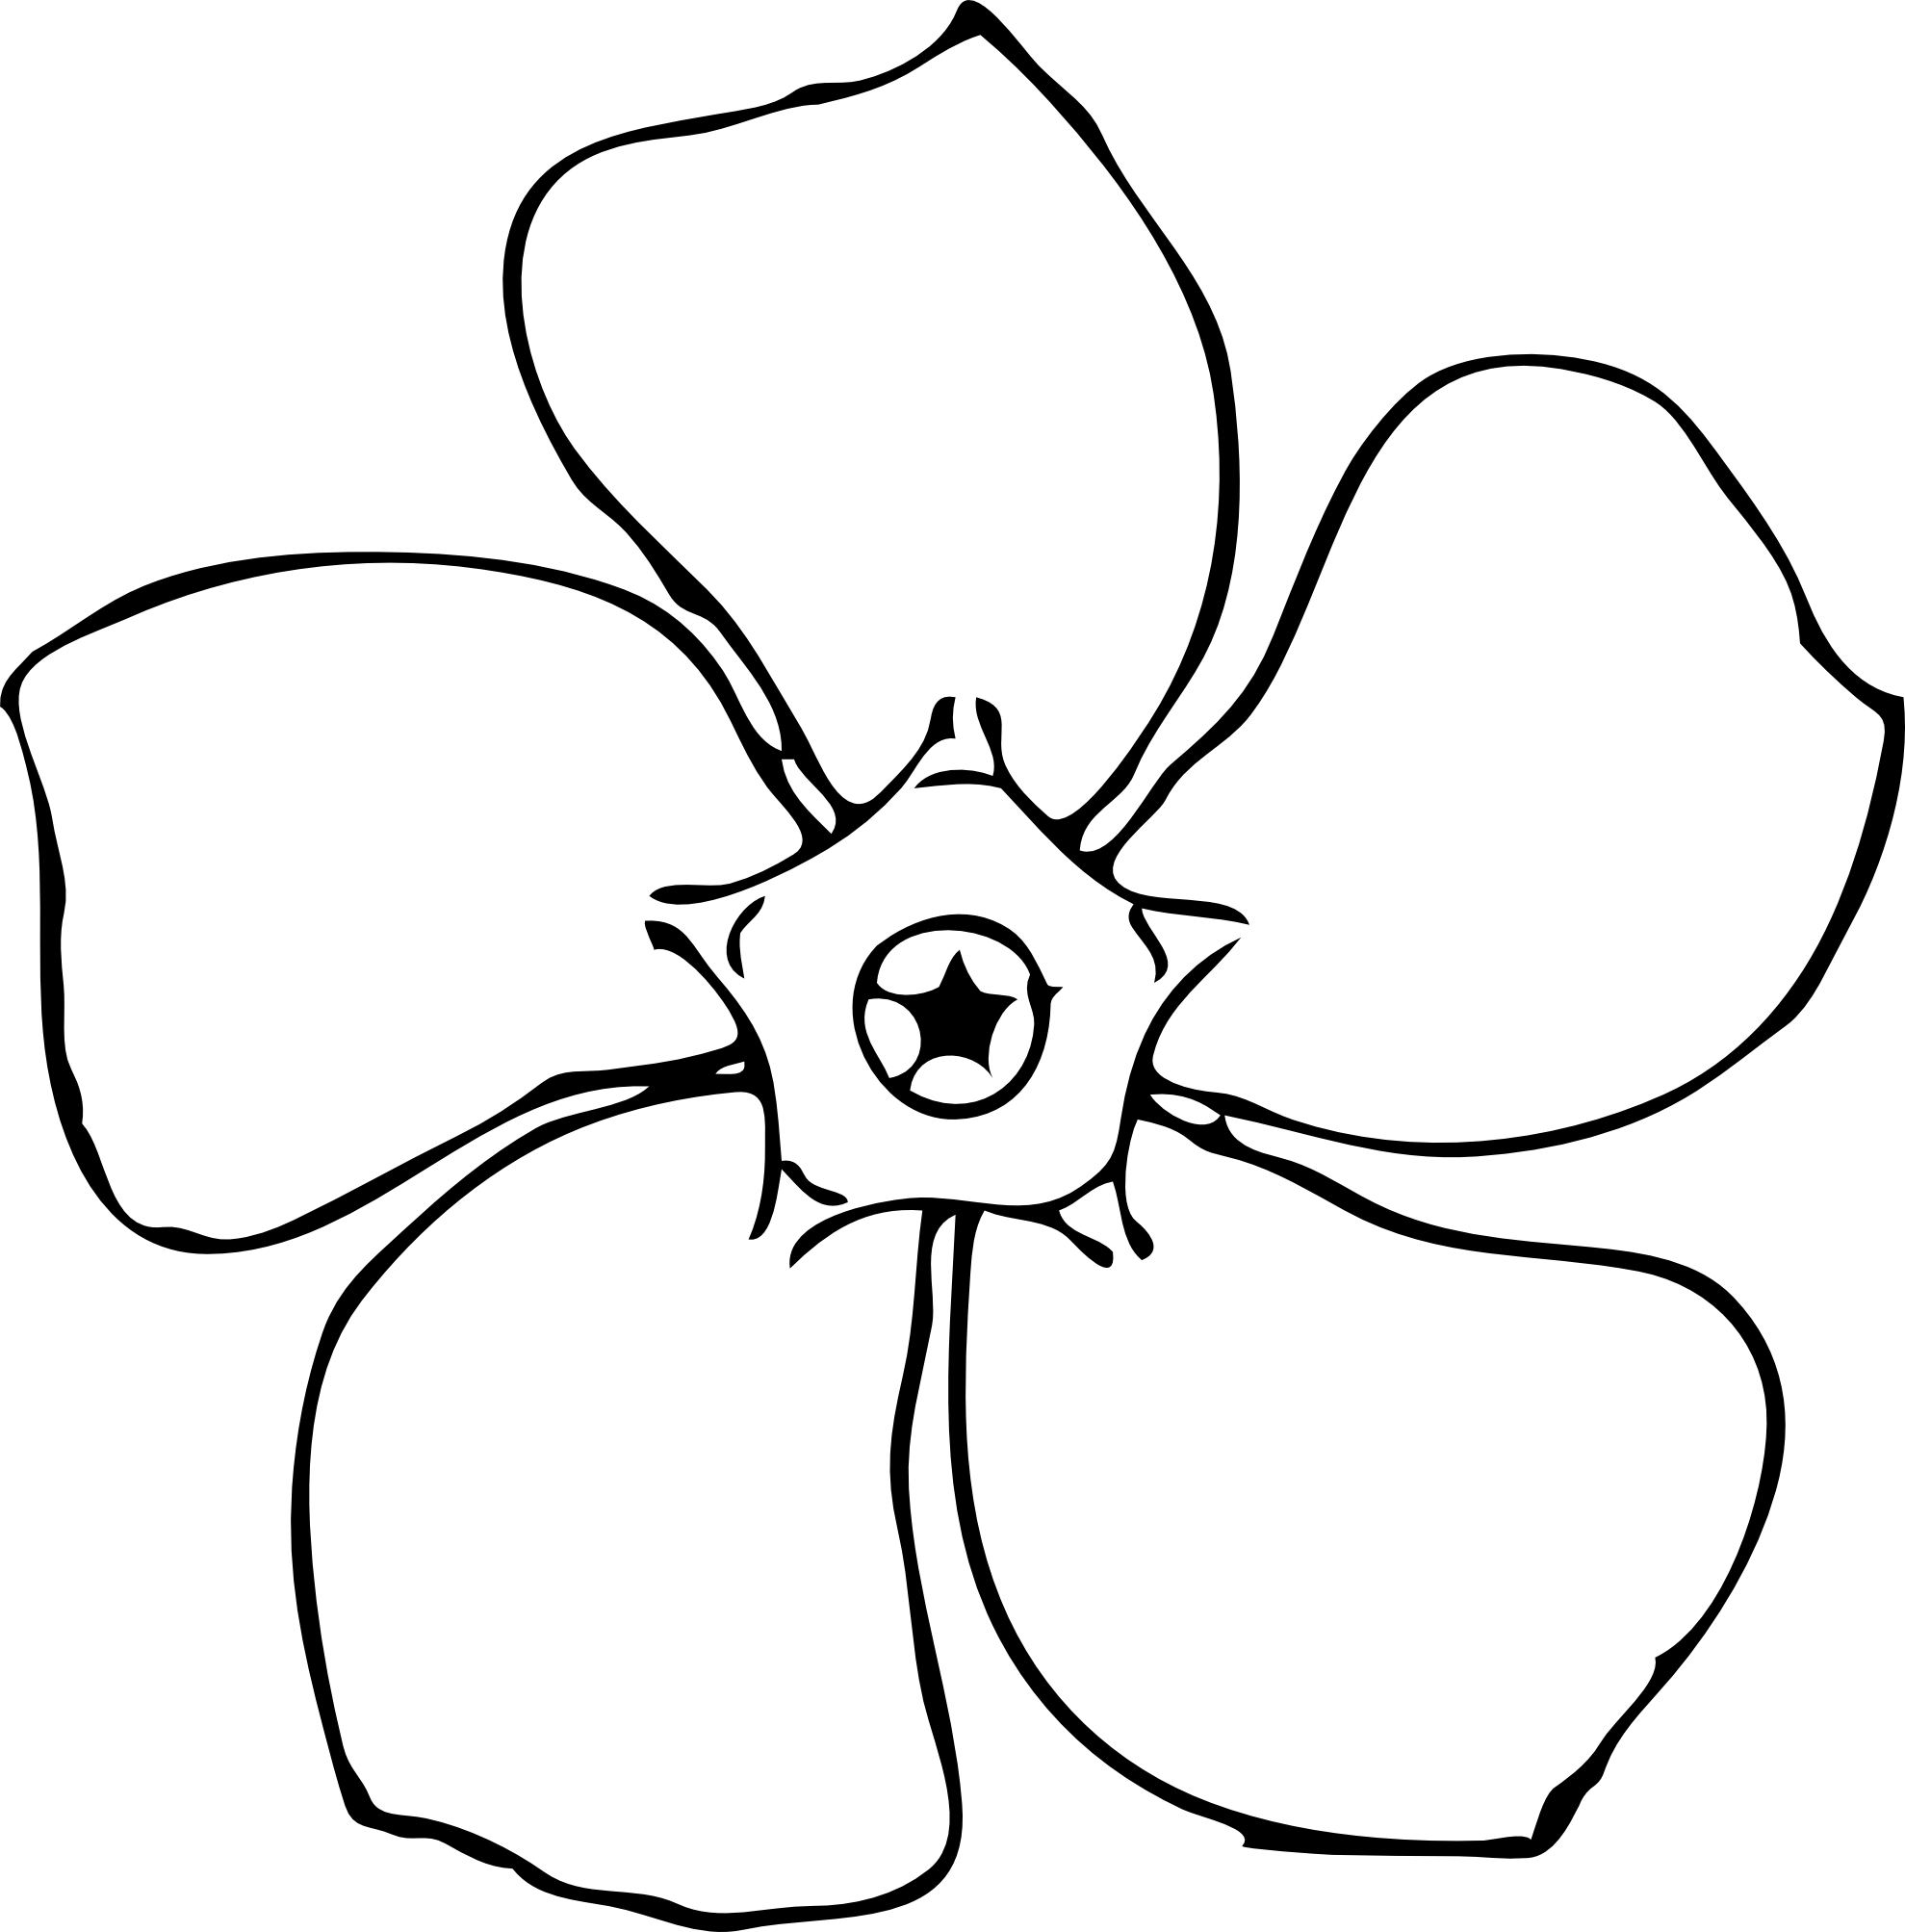 Line Art Flowers Vector : Magnolia flower clip art cliparts